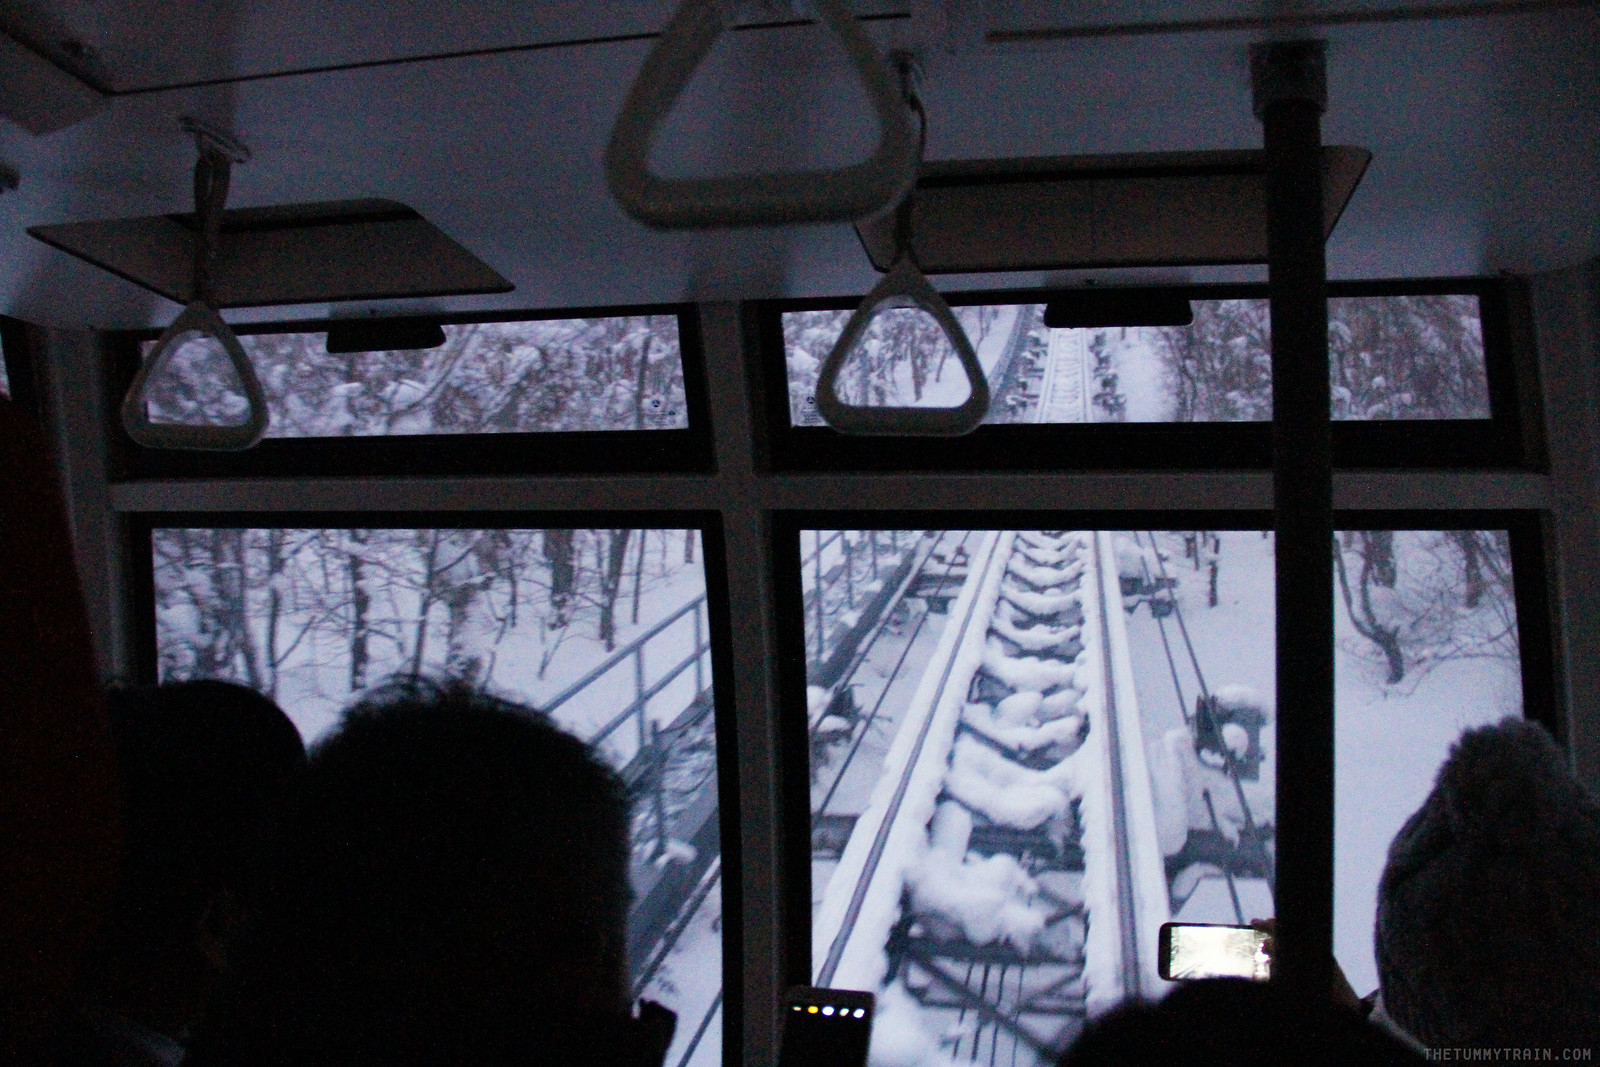 32101843263 aa23fe0d13 h - Sapporo Snow And Smile: 8 Unforgettable Winter Experiences in Sapporo City